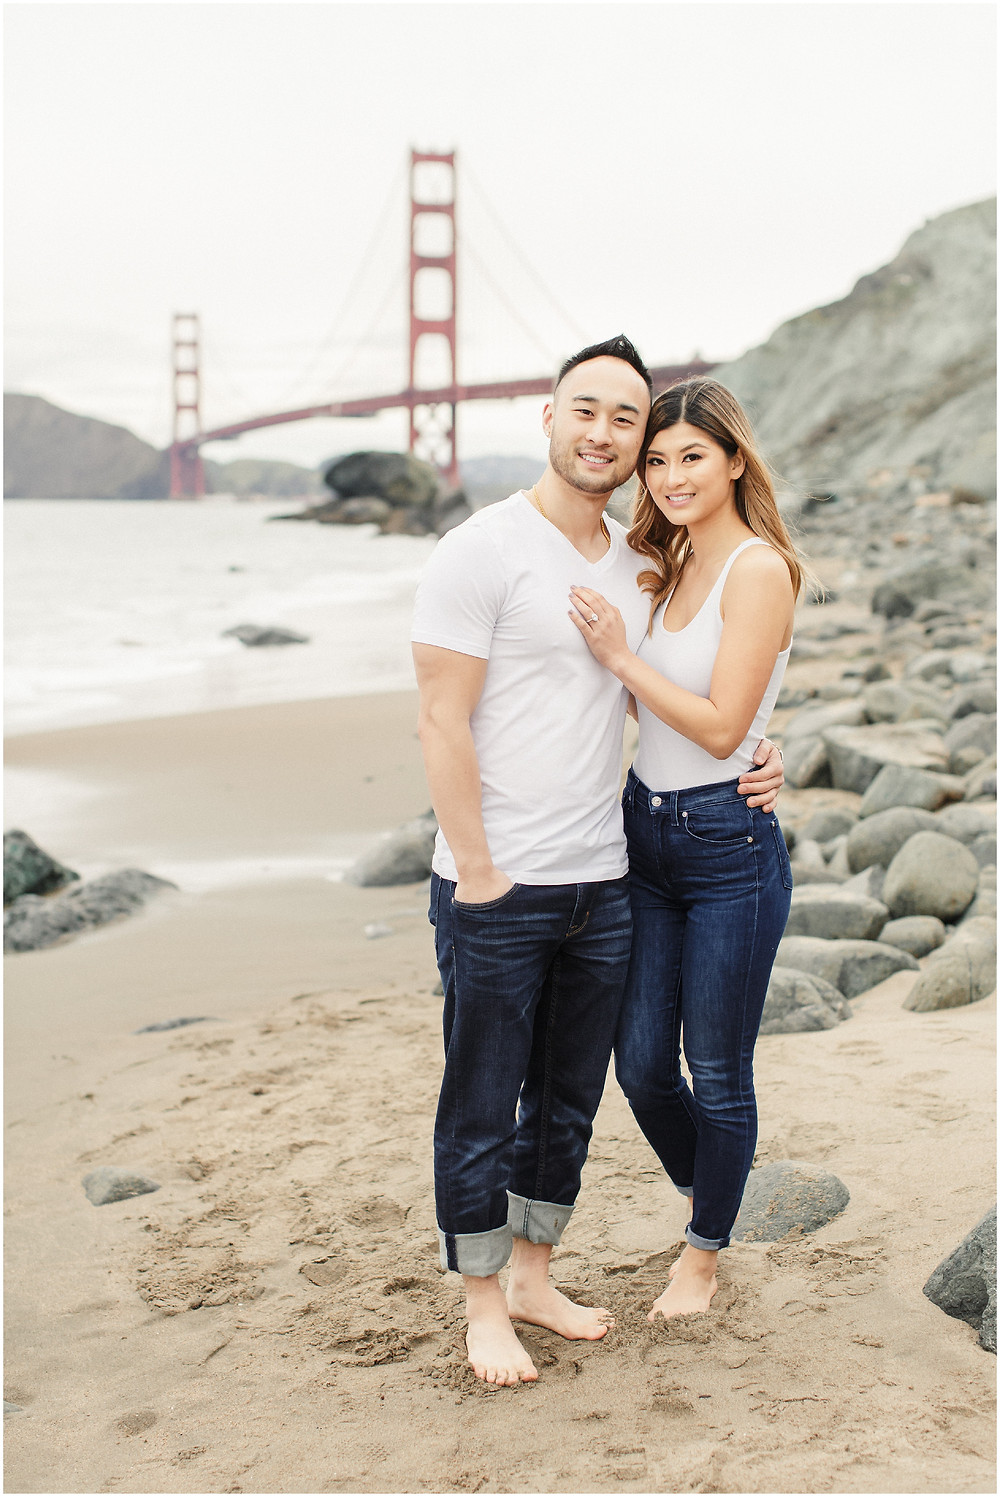 San Francisco engagement photographed at Marshall's Beach by Torrey Fox